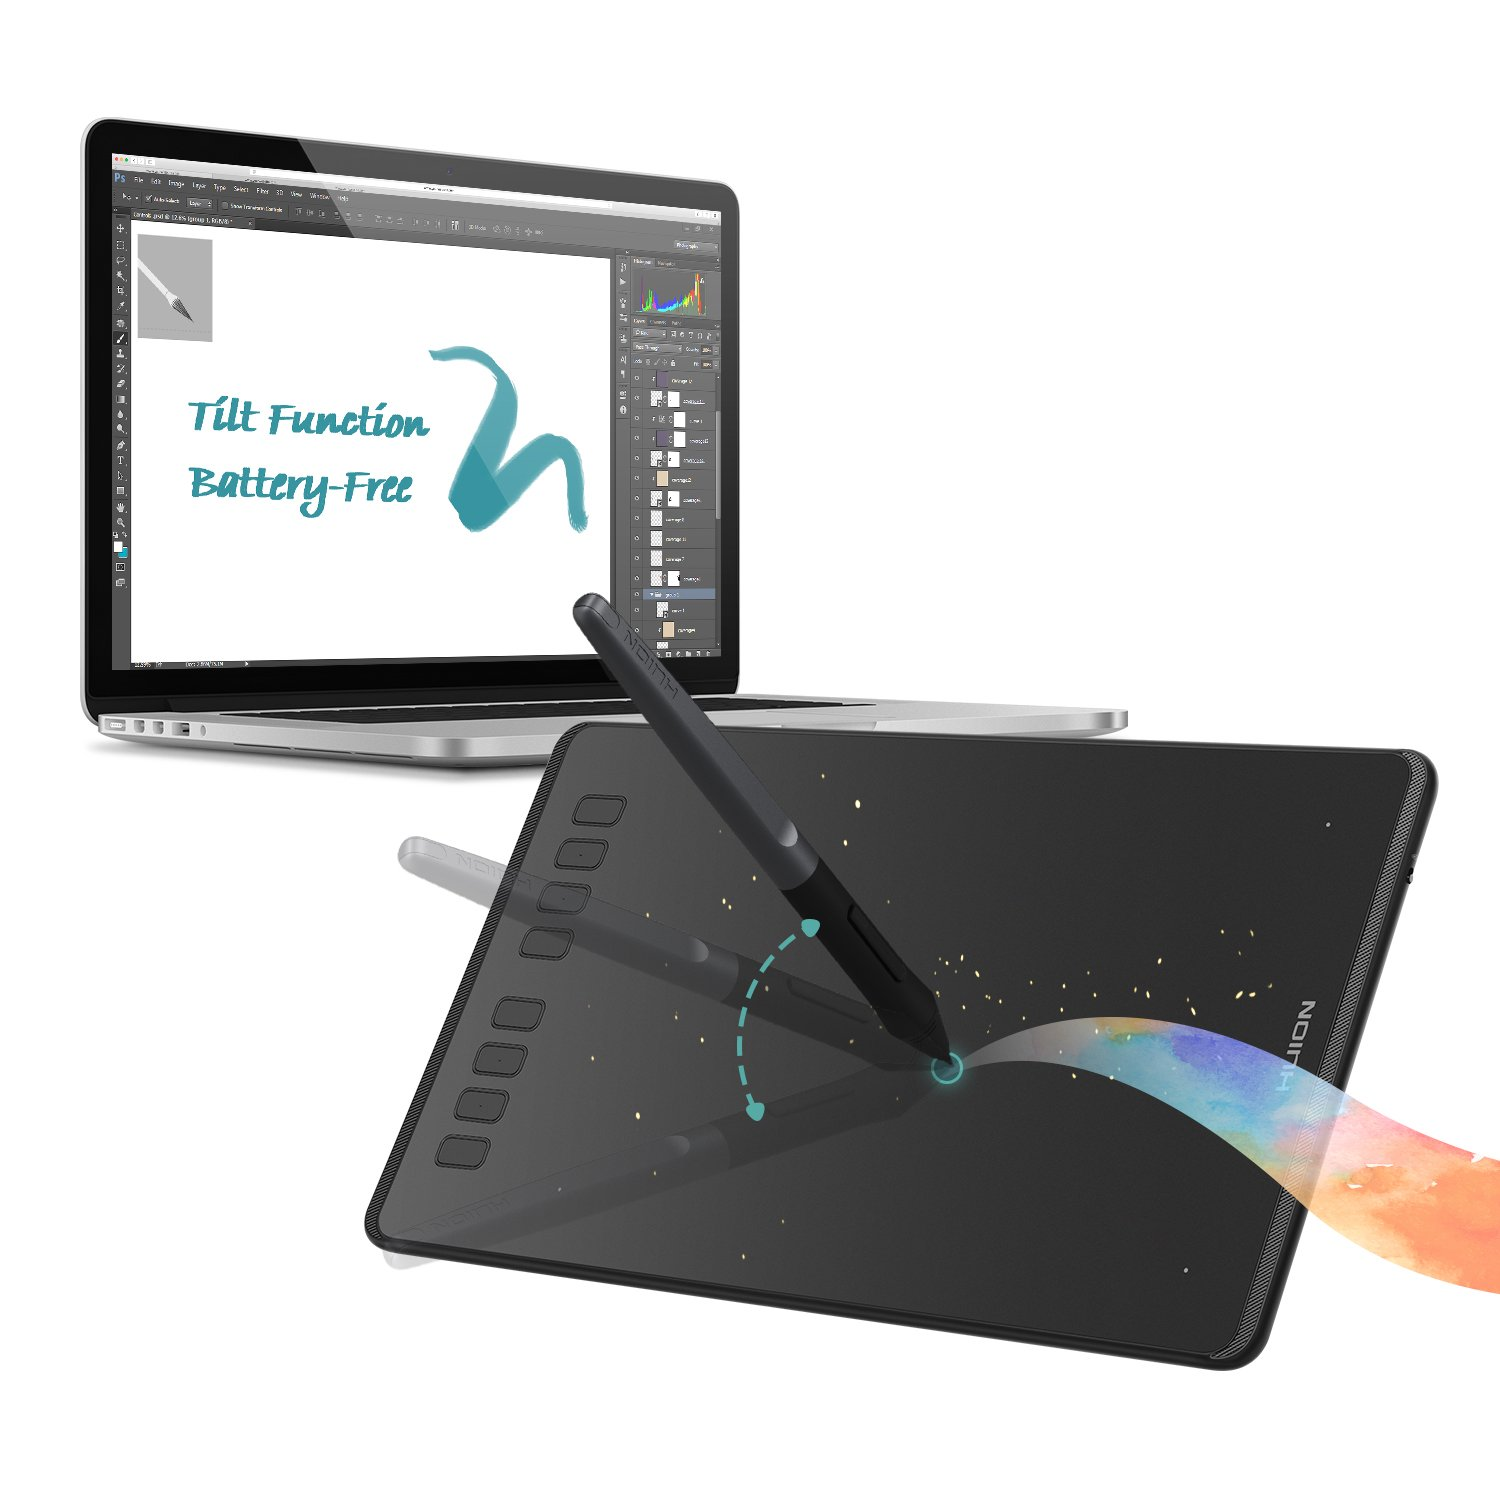 Huion Inspiroy H950P Graphics Drawing Tablet with Tilt Feature Battery-free Pen 8192 Pressure Sensitivity and 8 User-defined Shortcuts